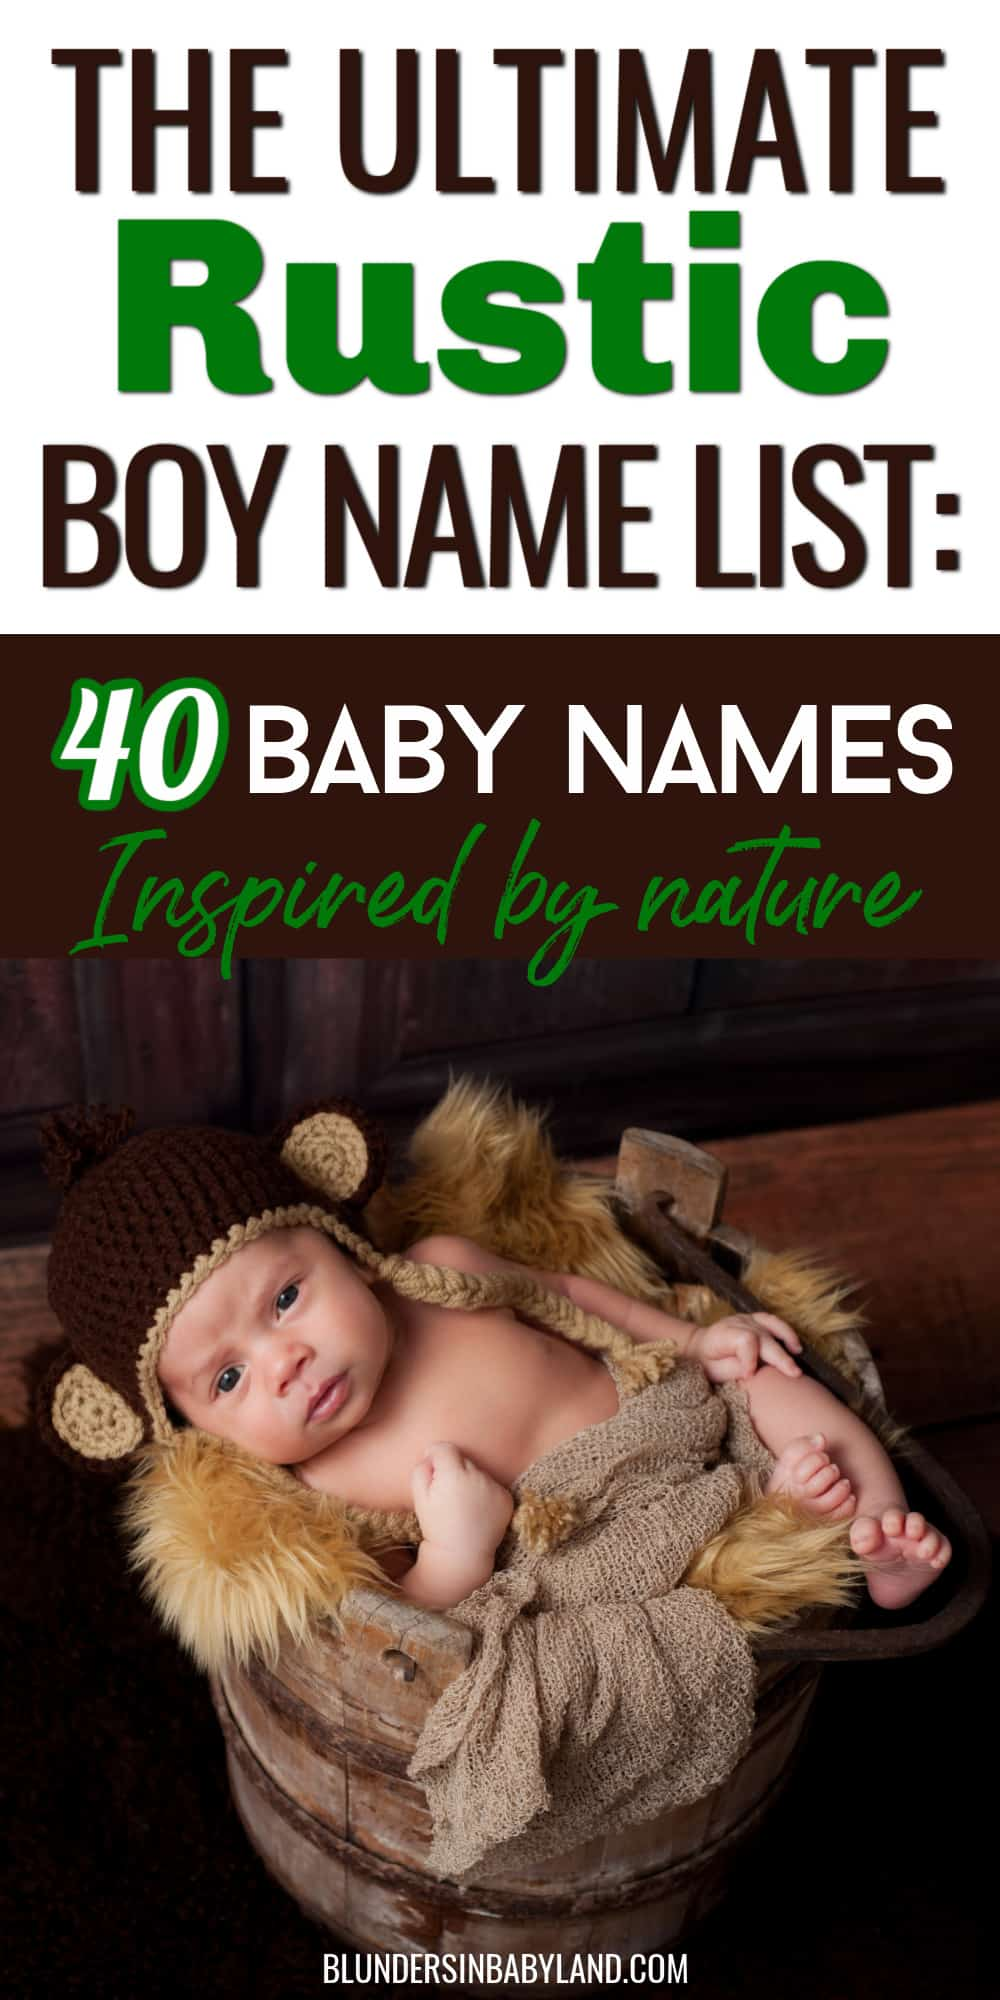 Rustic Boy Names Inspired by Nature - Rustic Baby Names